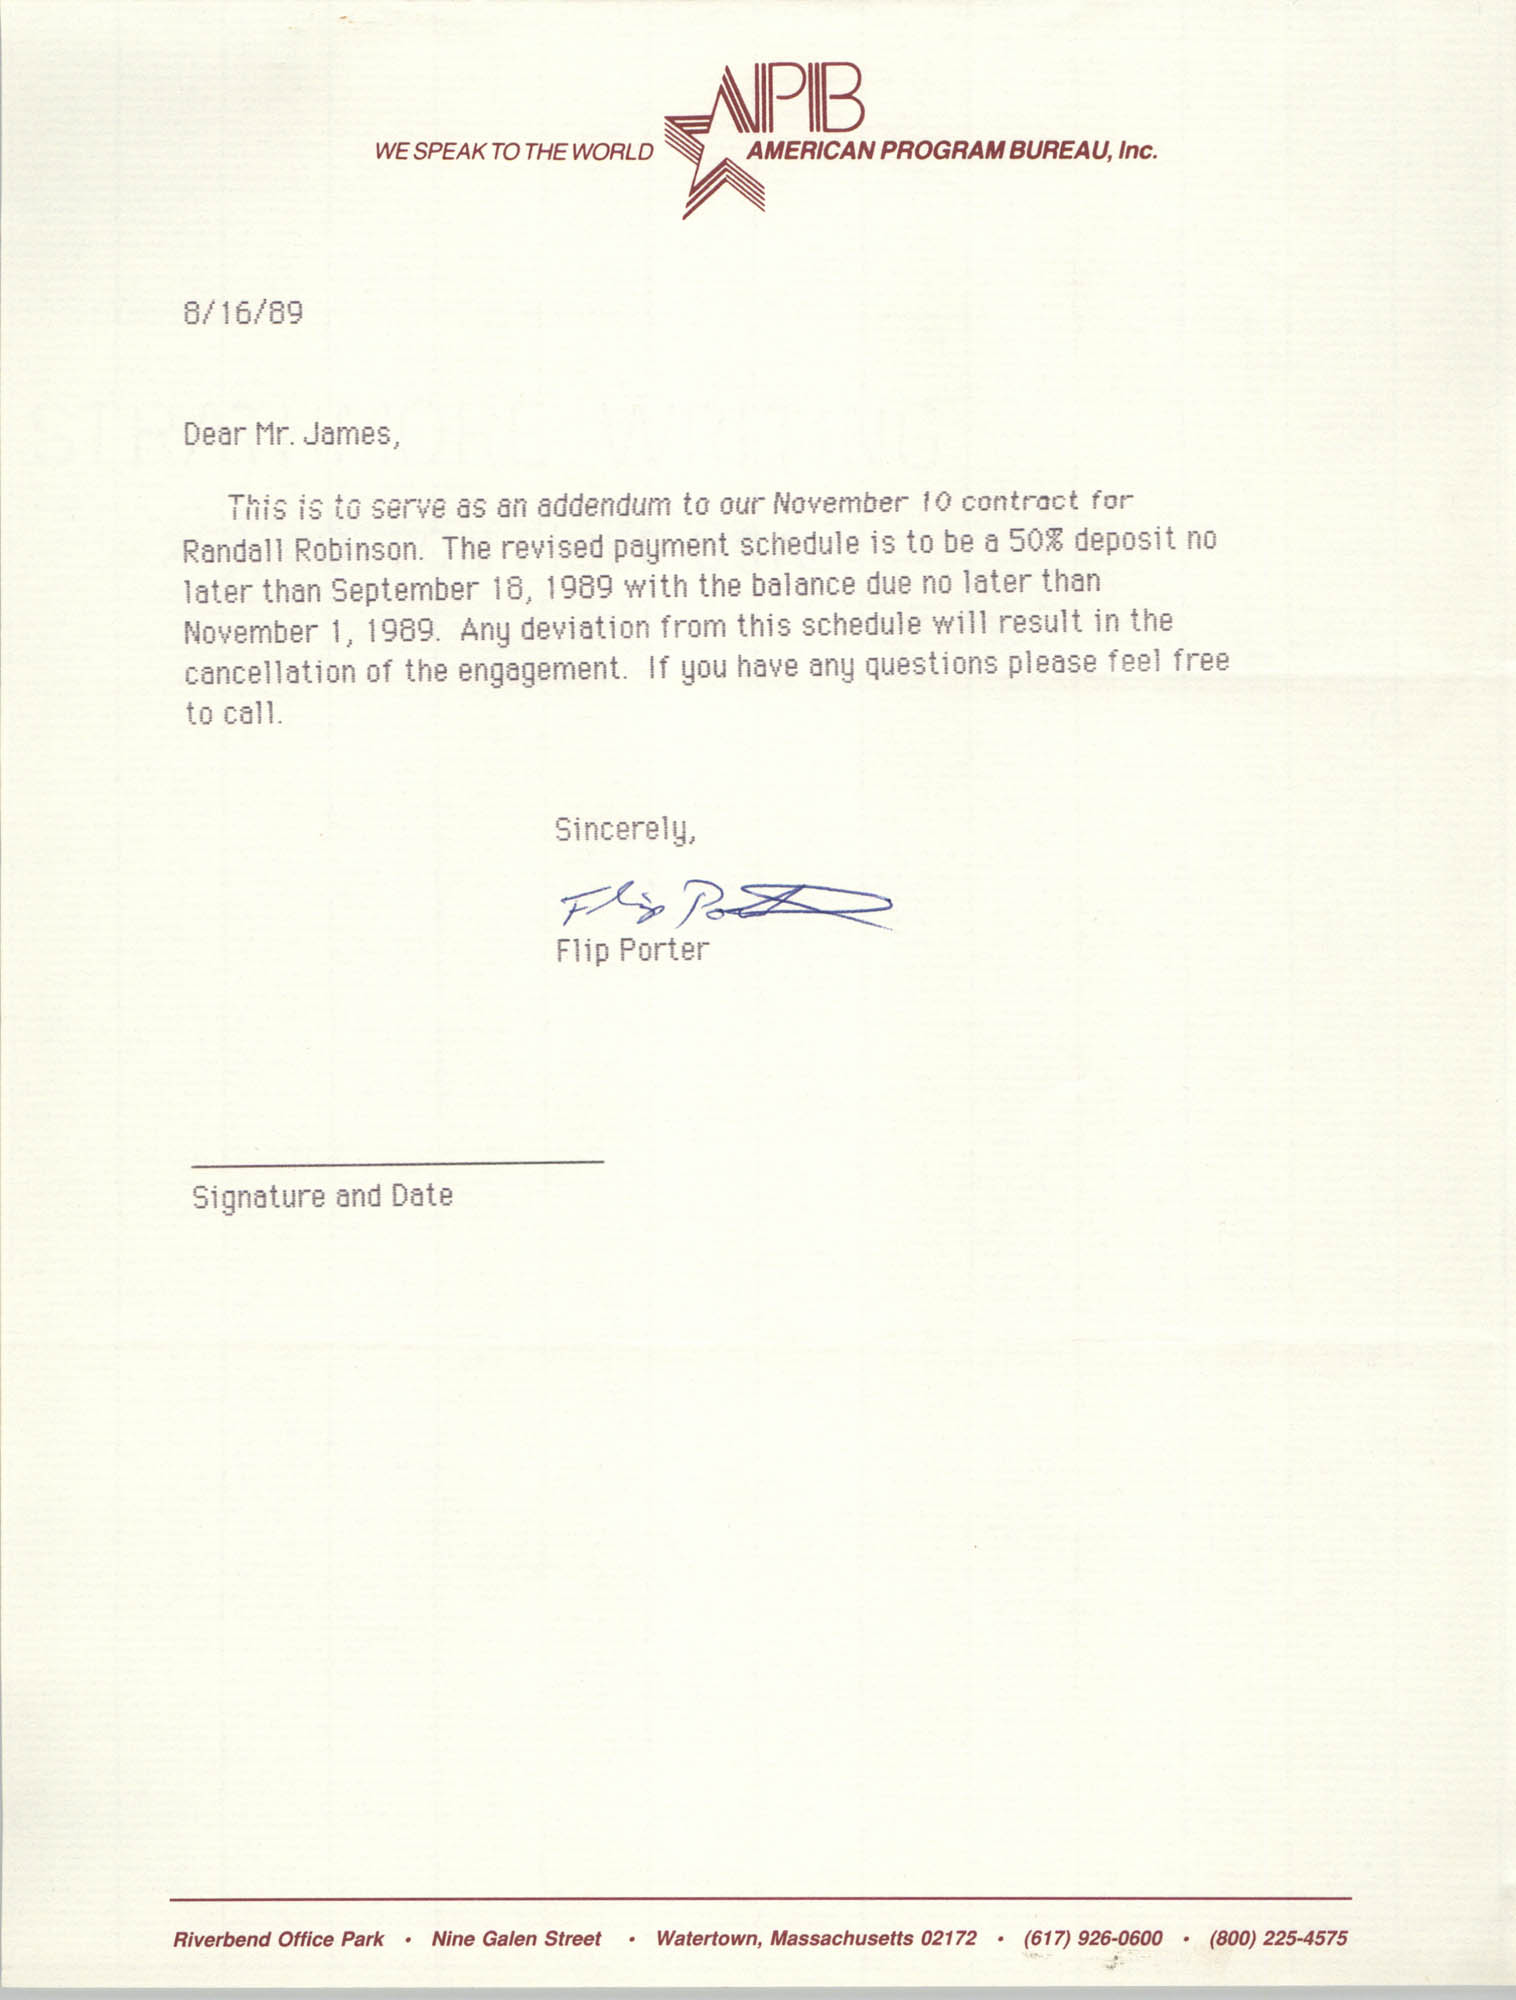 Letter from Flip Porter to Dwight C. James, August 16, 1989